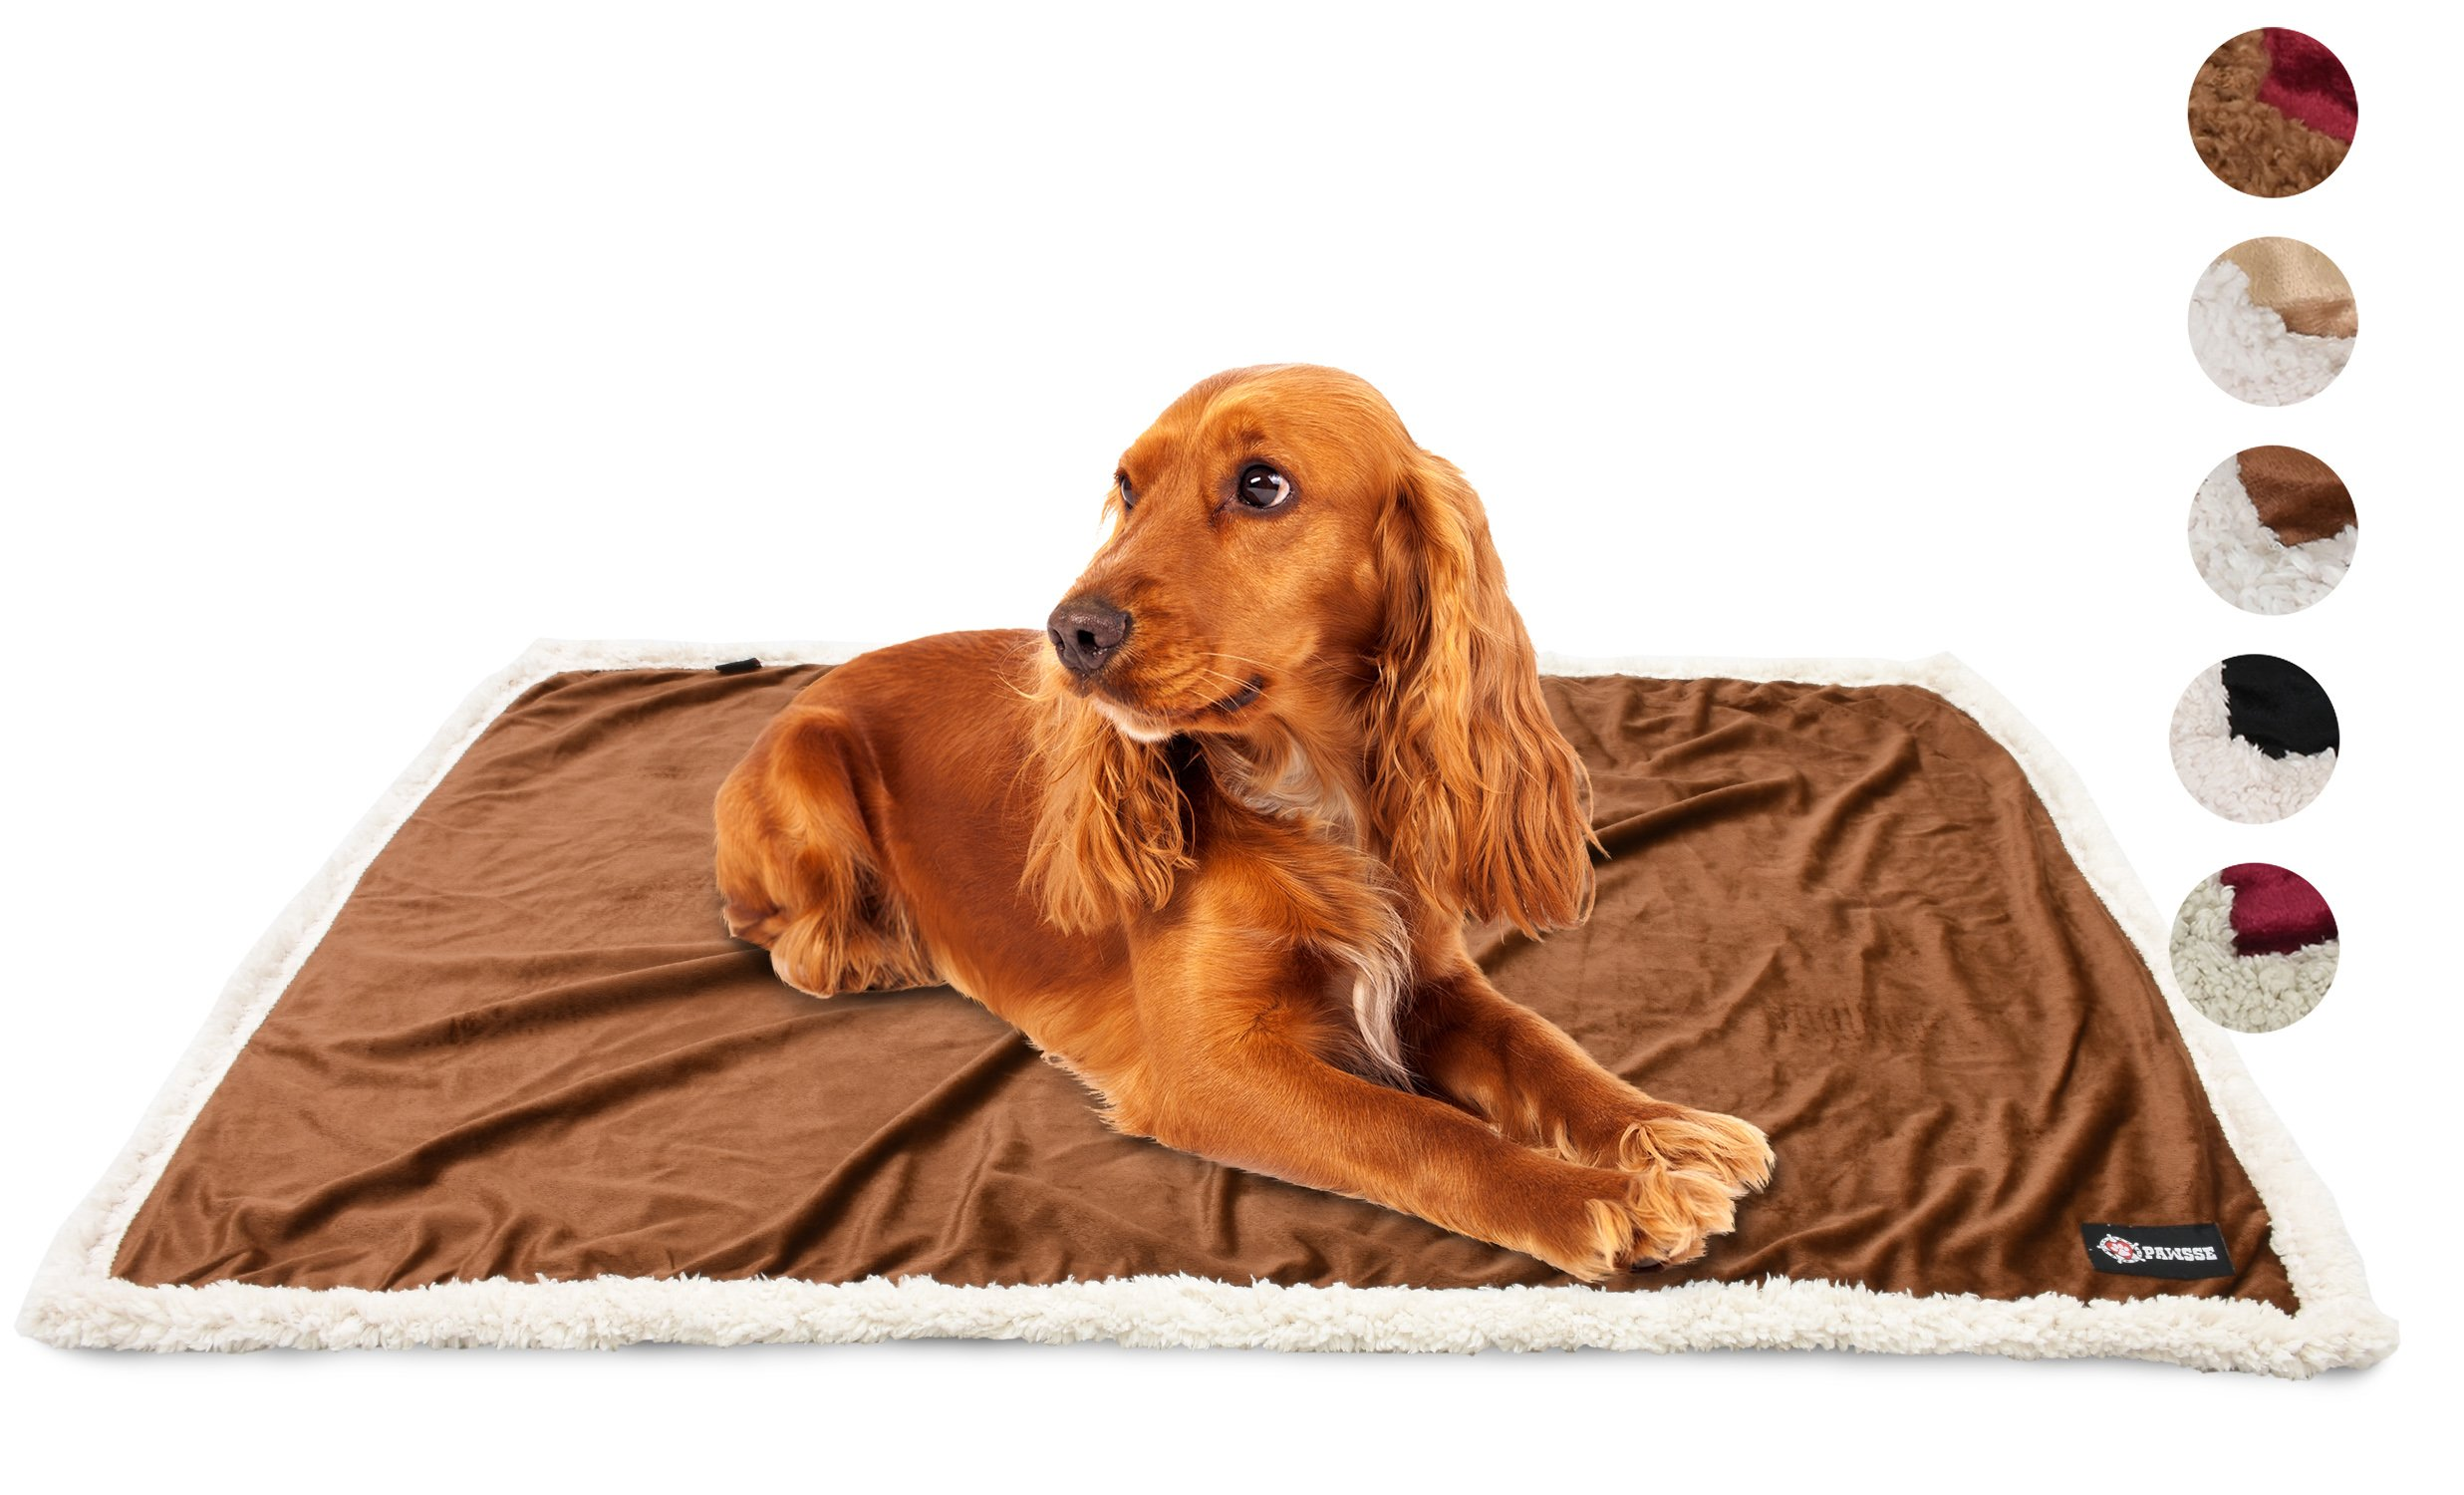 Puppy Blanket,Super Soft Sherpa Dog Blankets and Throws Cat Fleece Sleeping Mat for Pet Small Animals 45x30 Brown